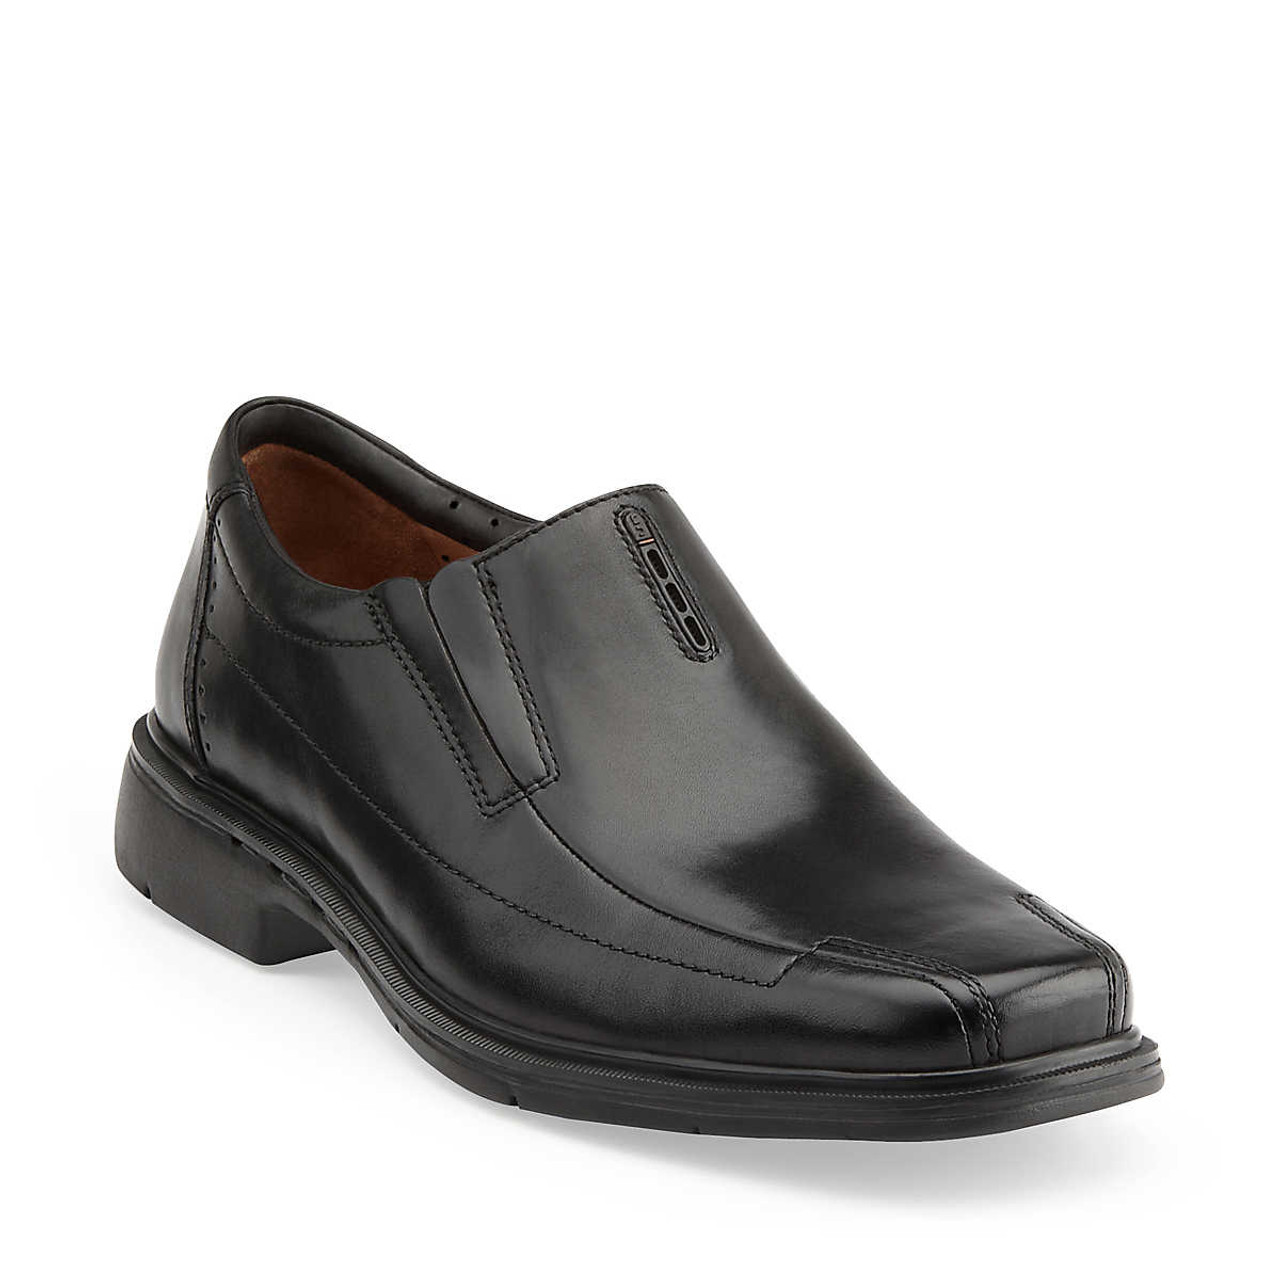 65948ca613f88 Unstructured By Clarks Un Sheridan Brown Mens Dress Loafers - Shop now    Shoolu.com